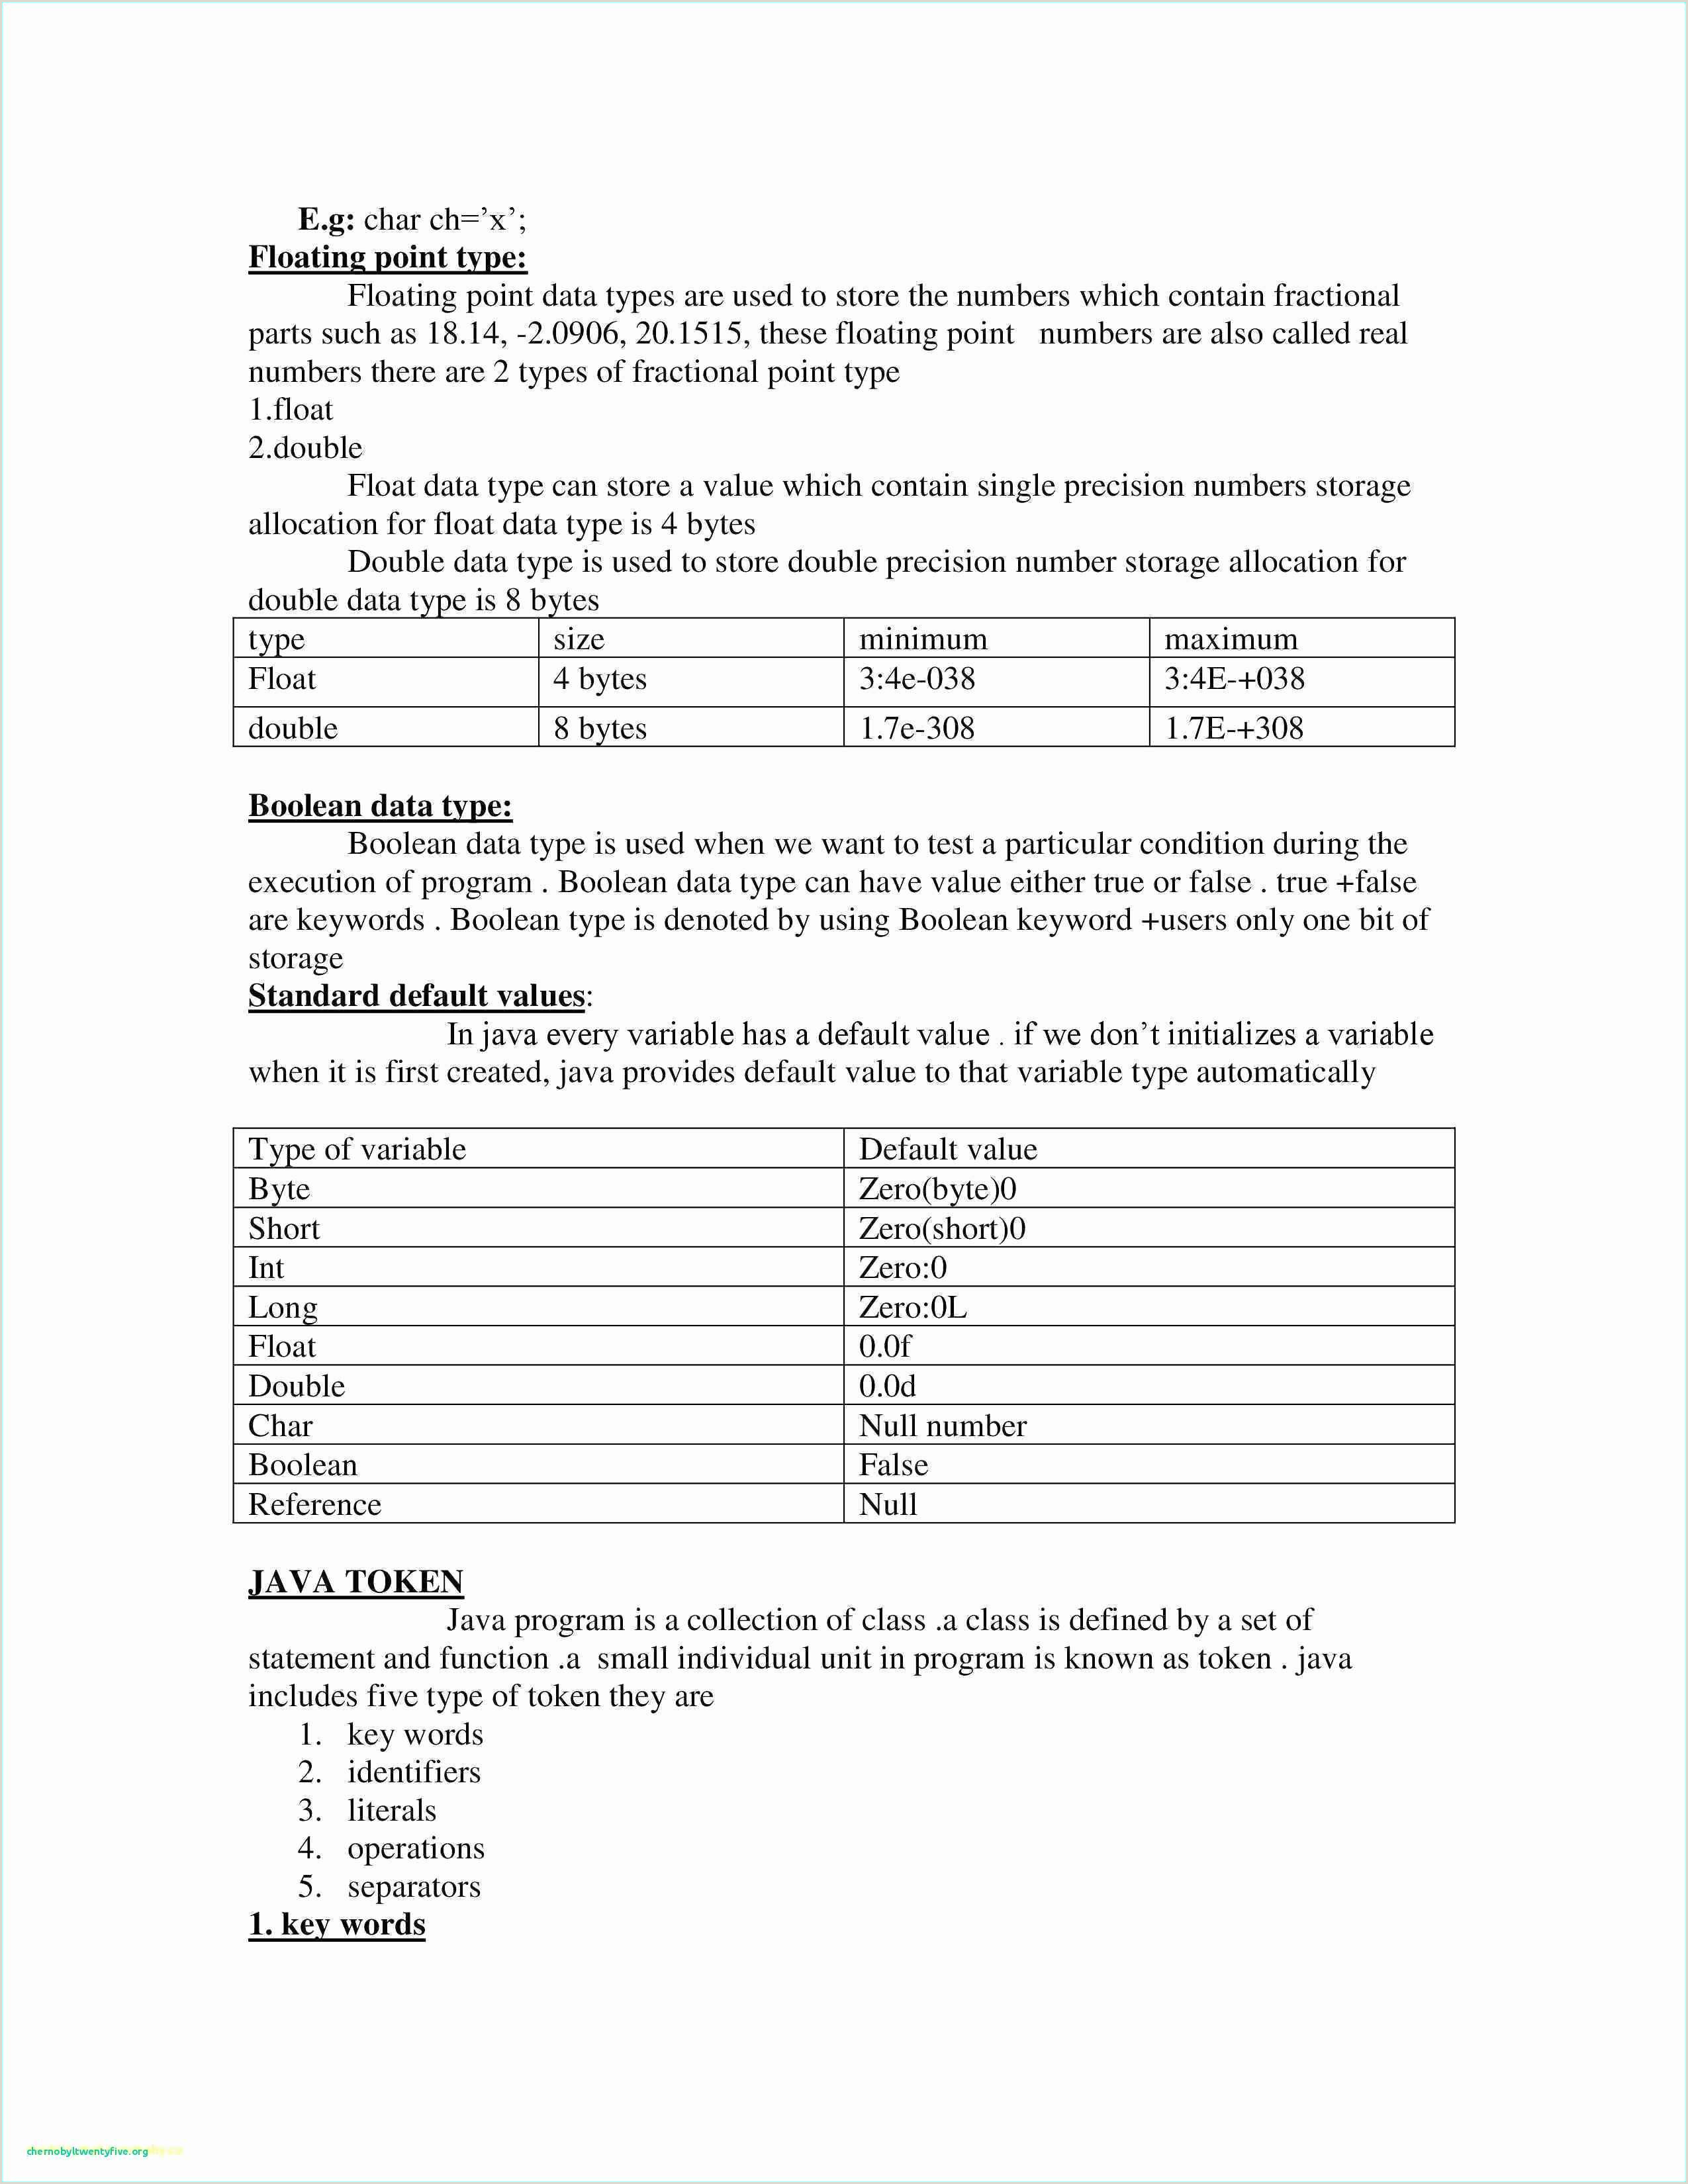 Resume format for Bank Job Fresher Pdf Resume formats for Fresher New Resume Freshers format Sample